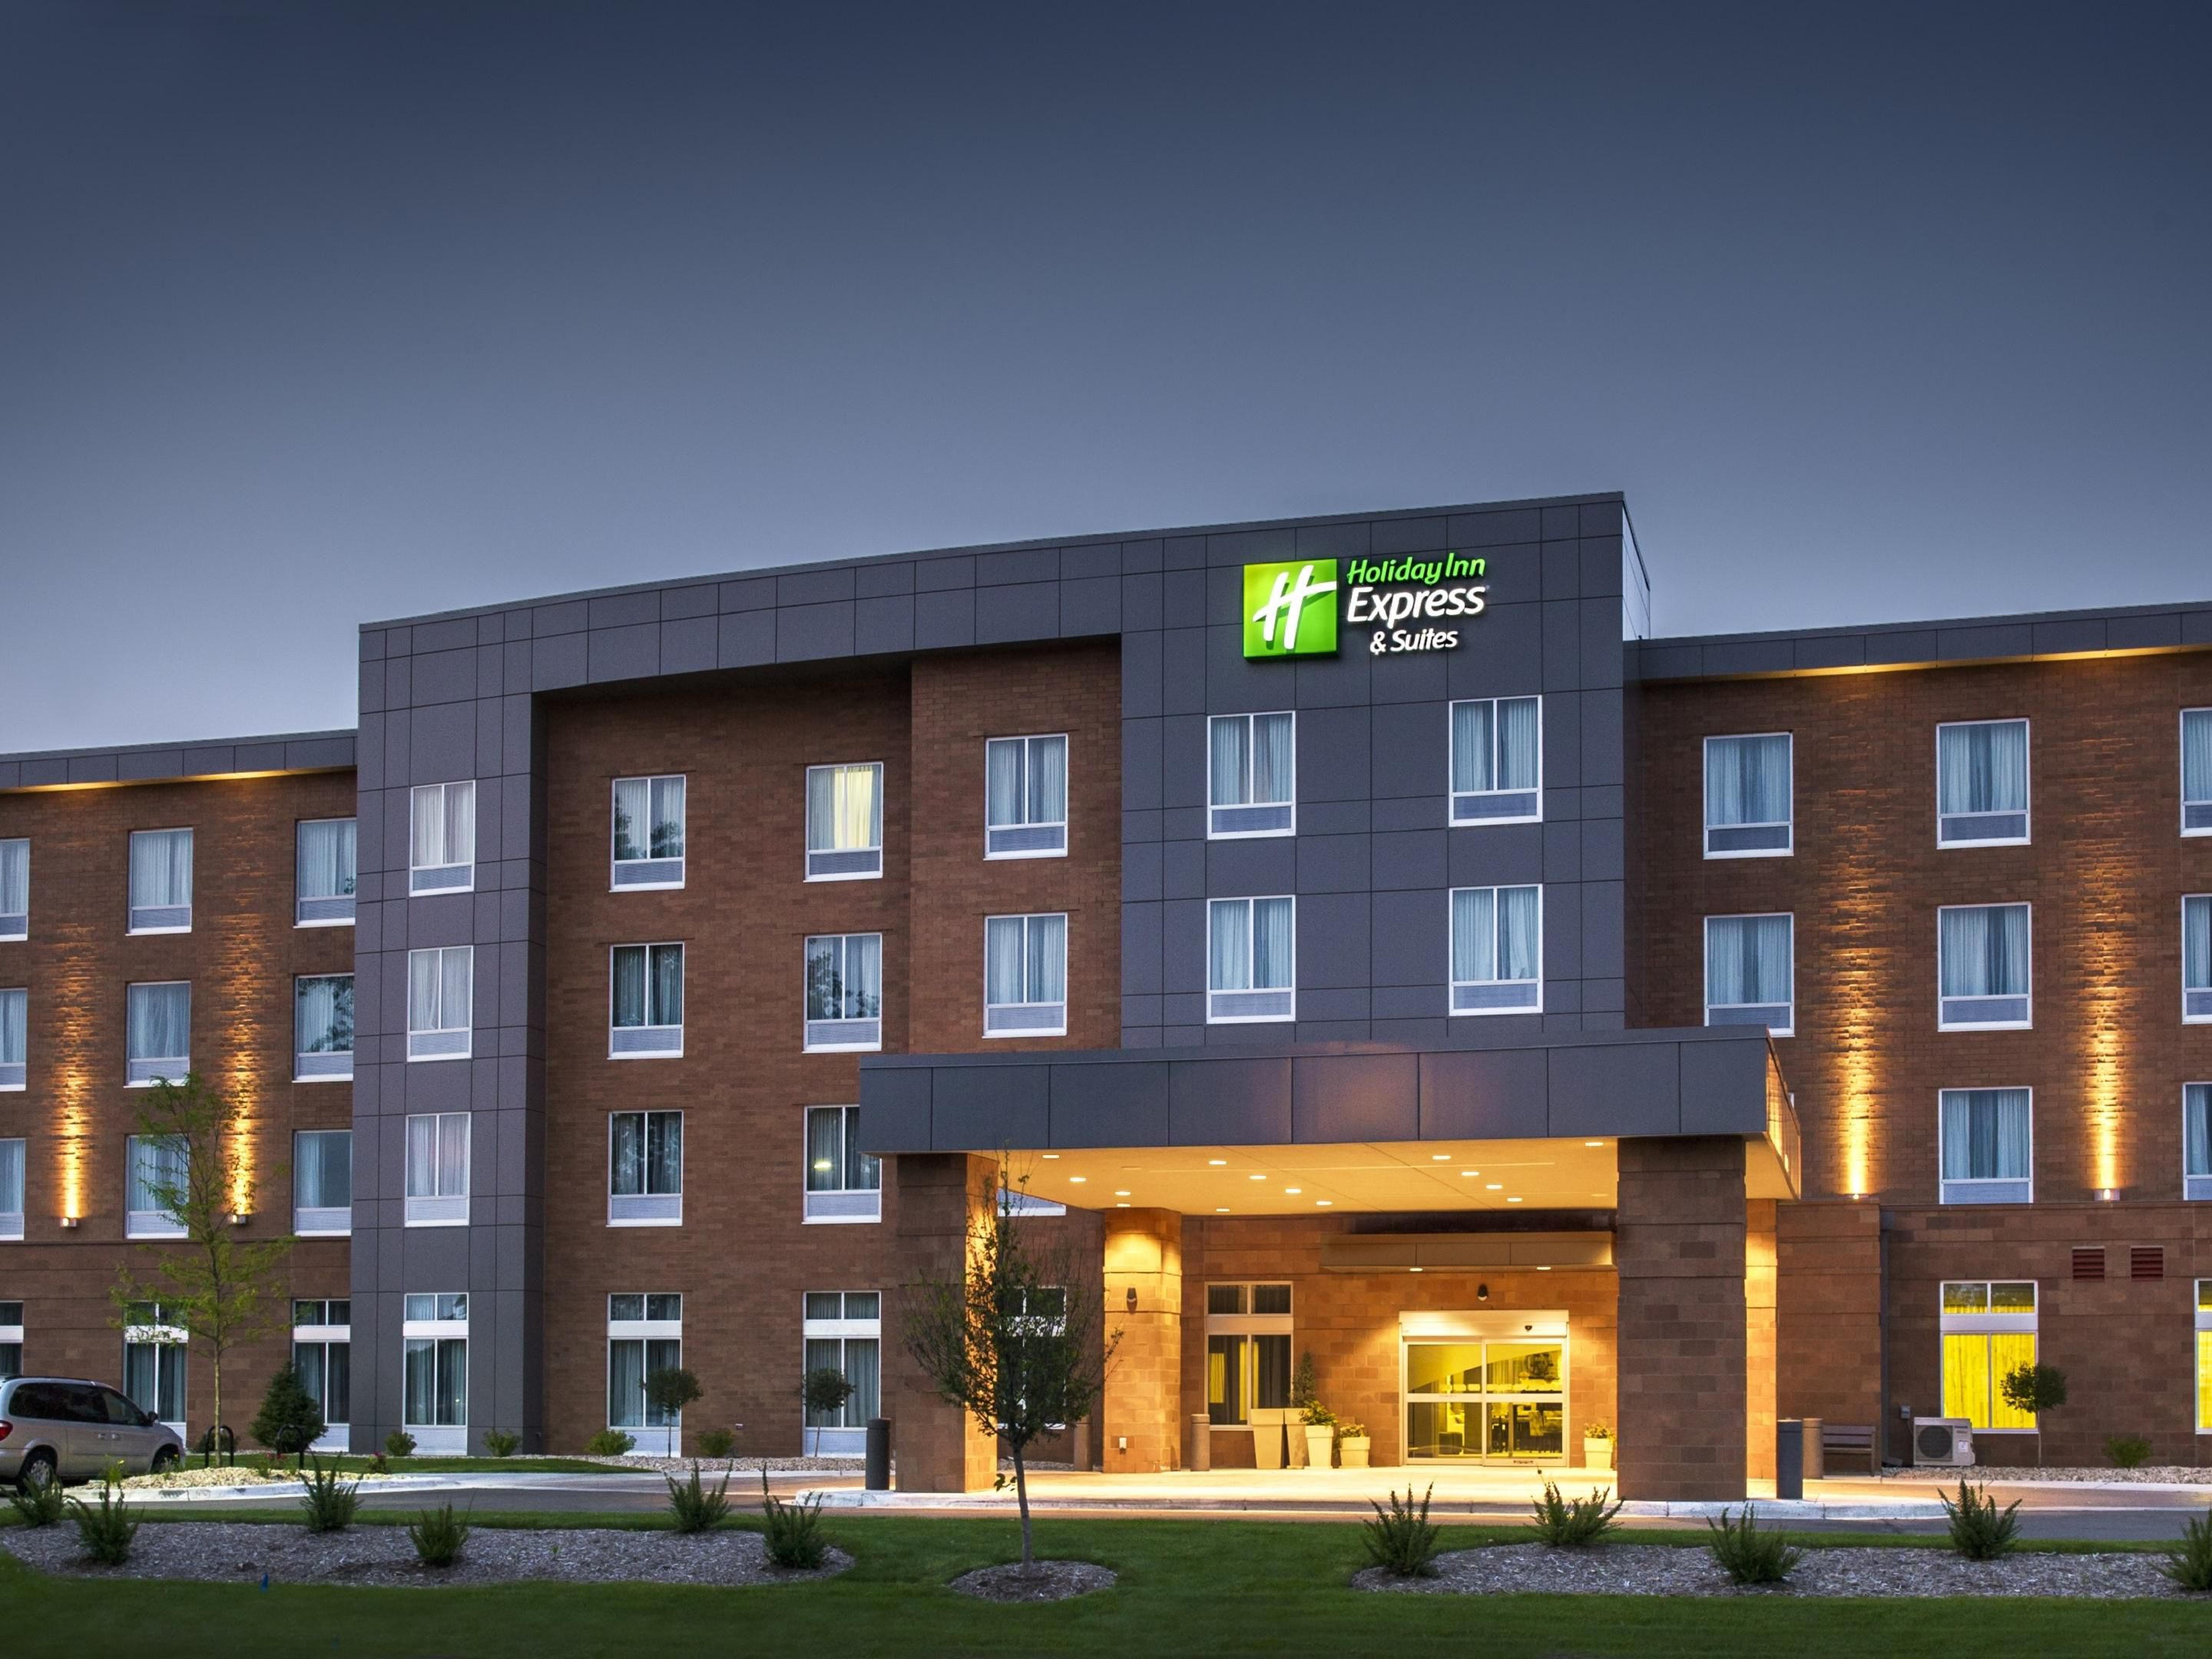 Holiday Inn Express near the Alliant Energy Center